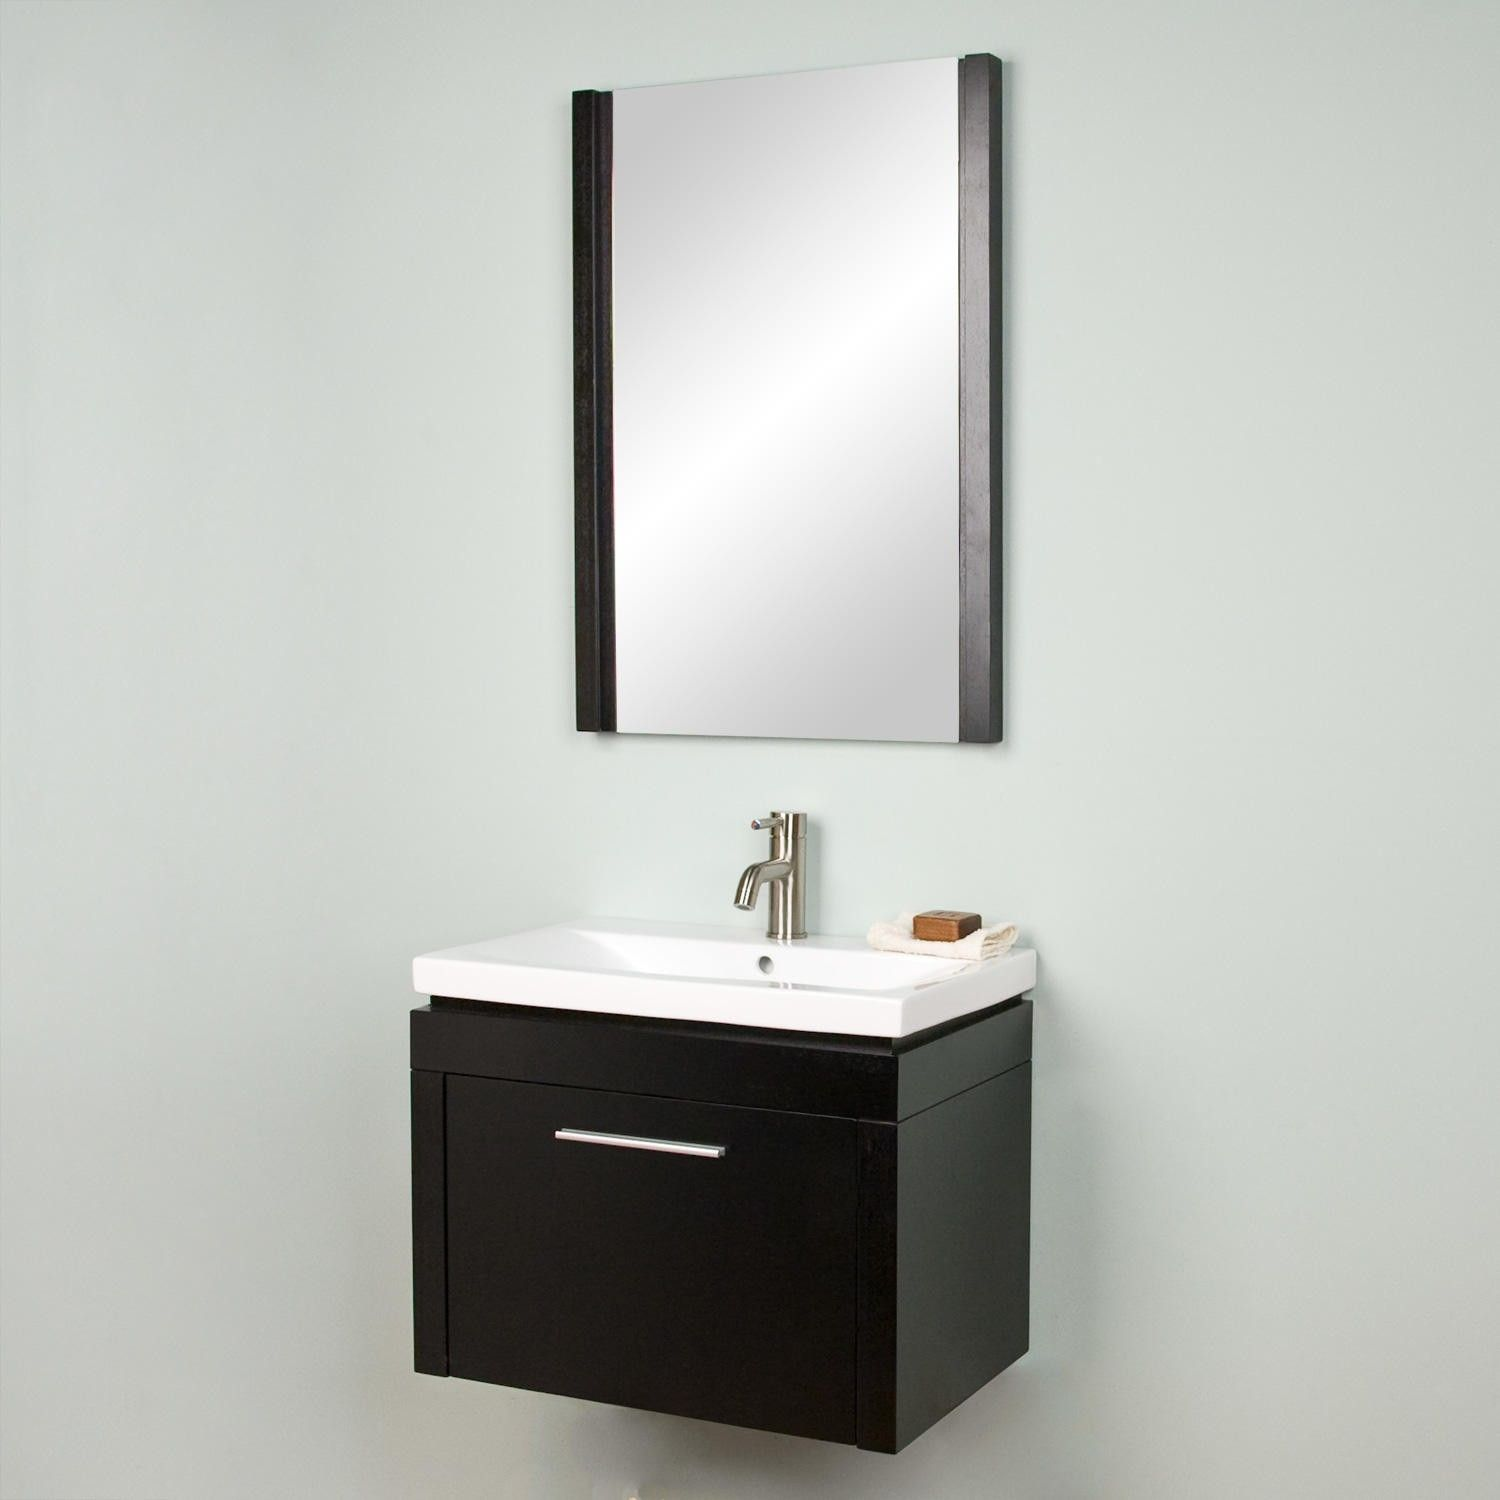 Half Bath Black Or Brown 24 Sven Wall Hung Vanity With Mirror